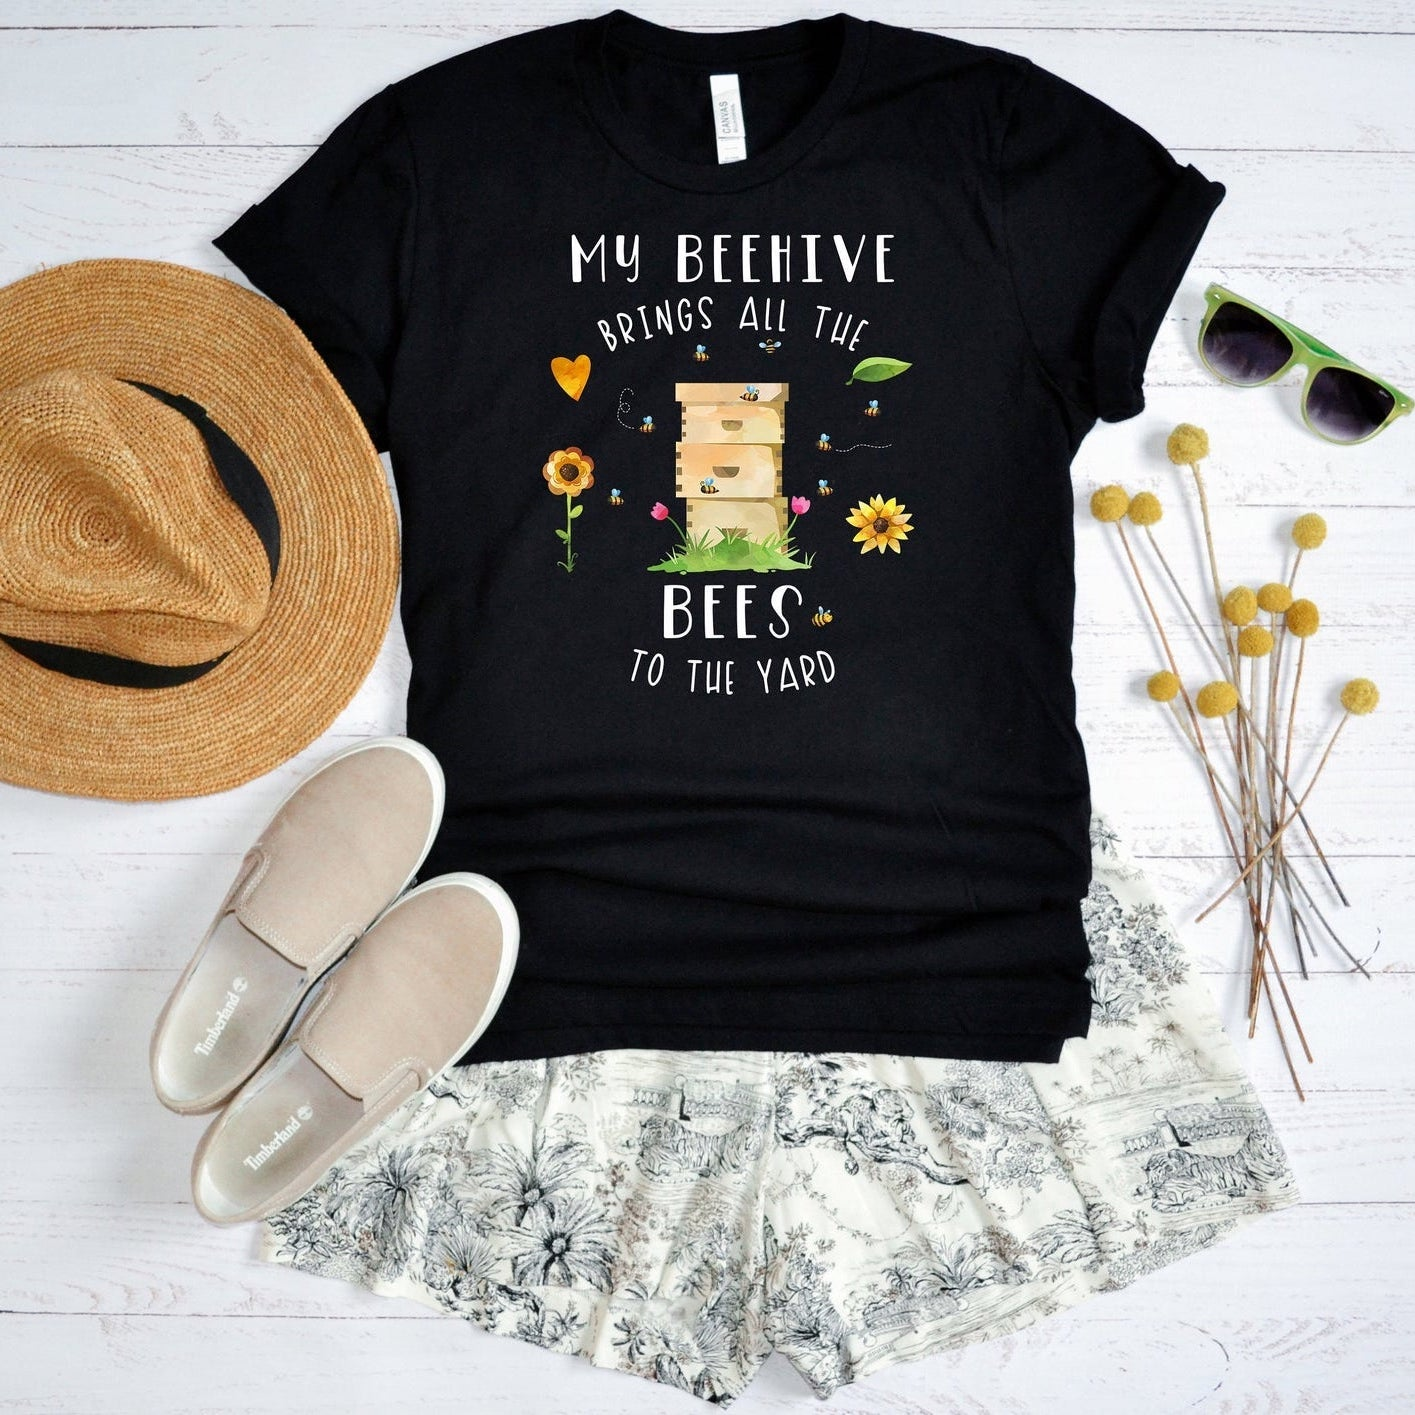 My Beehive Brings All The Bees To The Yard T-shirt, Funny Beekeeper Shirt, Beekeeping Tee, Honey Bee Lover Gift, Bee Graphic, Unisex T-Shirt